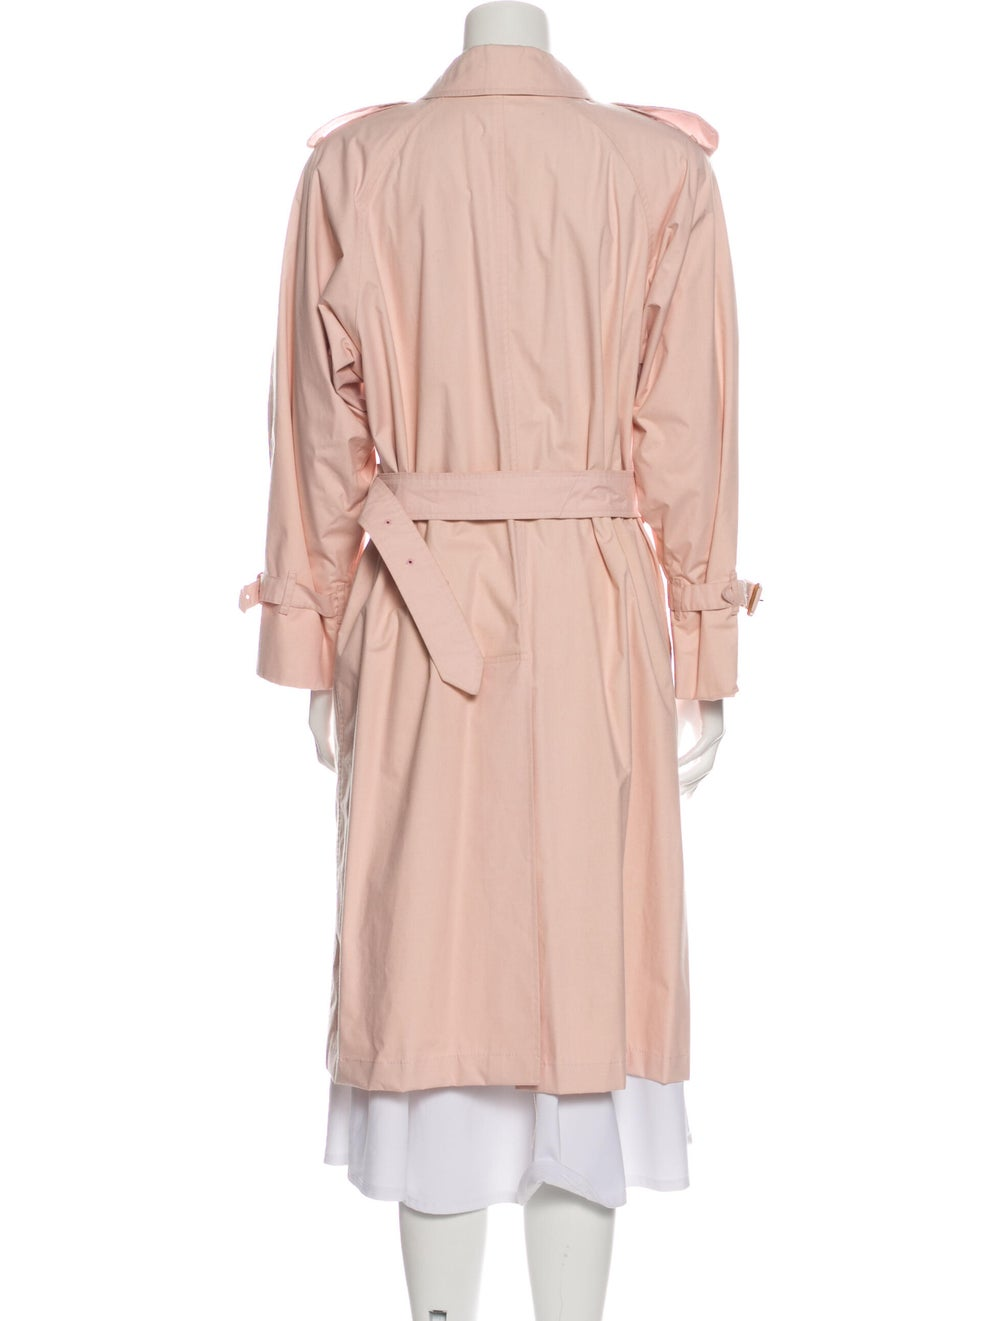 Burberry Vintage Trench Coat Pink - image 3